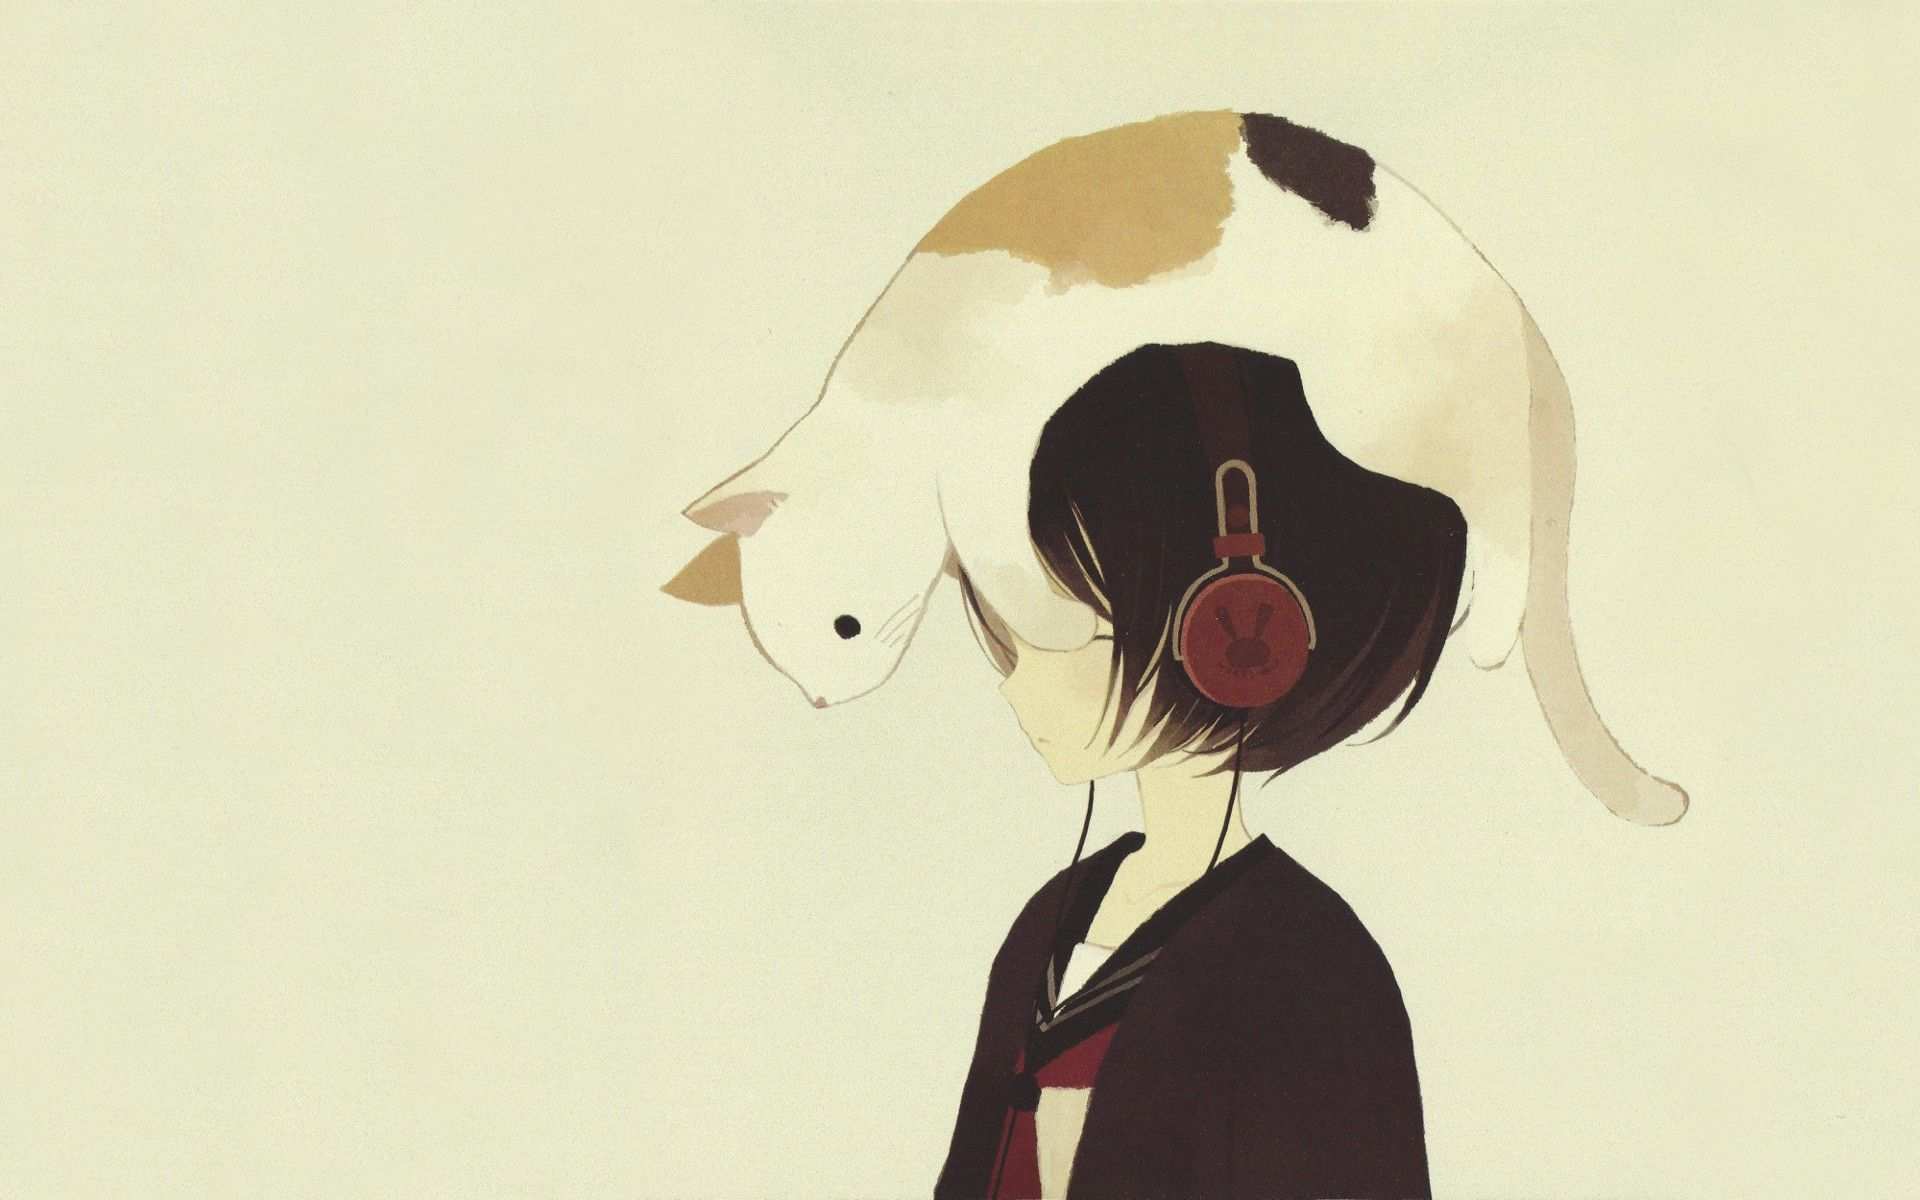 ahh cat+headphones=happiness {The earth has music for those who